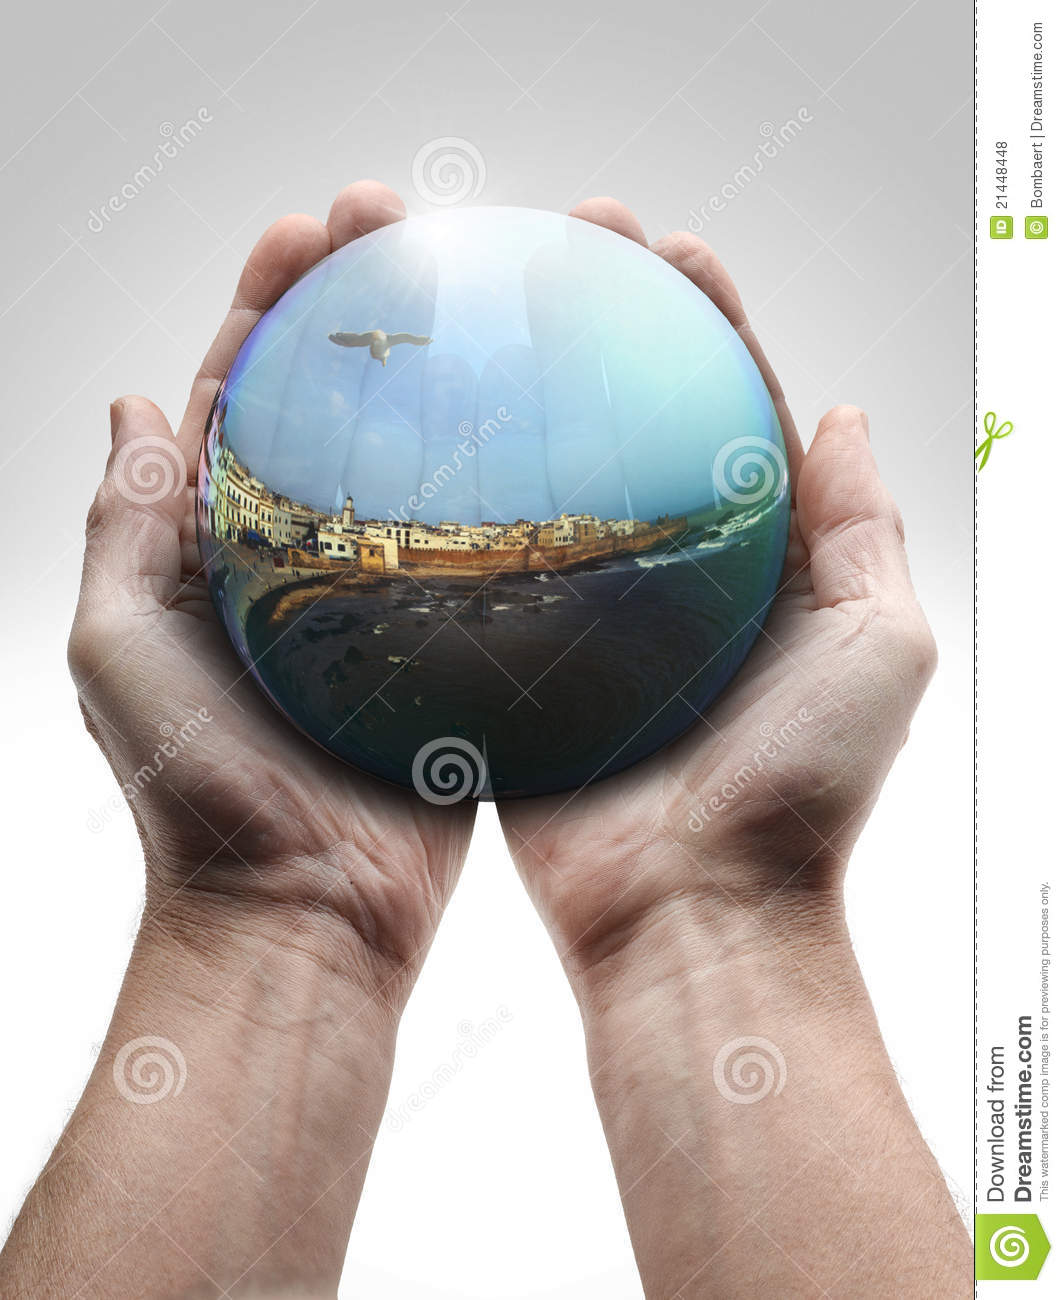 Photographie Stock Boule En Verre Image34865662 likewise 1 484346 together with Stock Photos Tarot Cards Magic Wand Image25093243 besides Stock Photo Cute Little Boy Reading Book Moon Light Kid Image56419914 besides Stock Photos  puter User Image5377933. on oracle xs